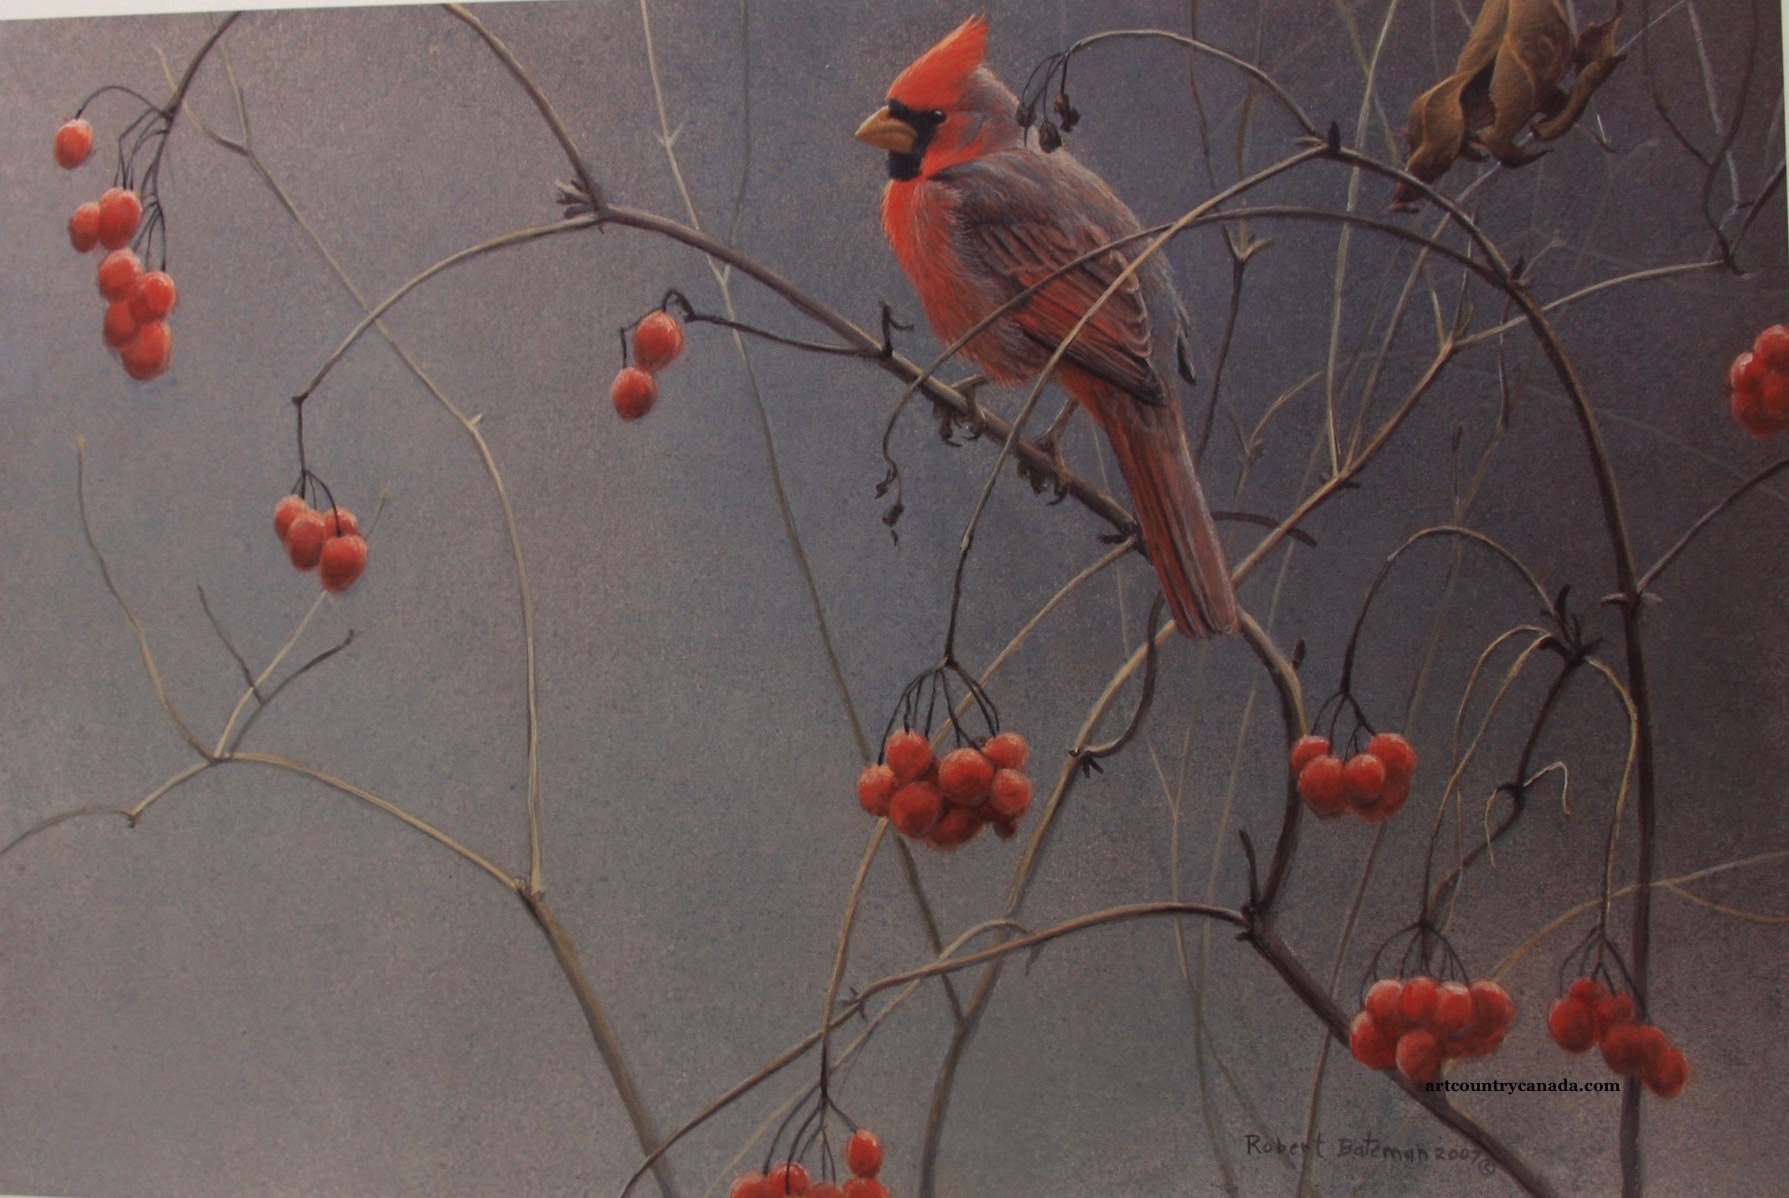 Robert Bateman Highbush Cranberries and Cardinal